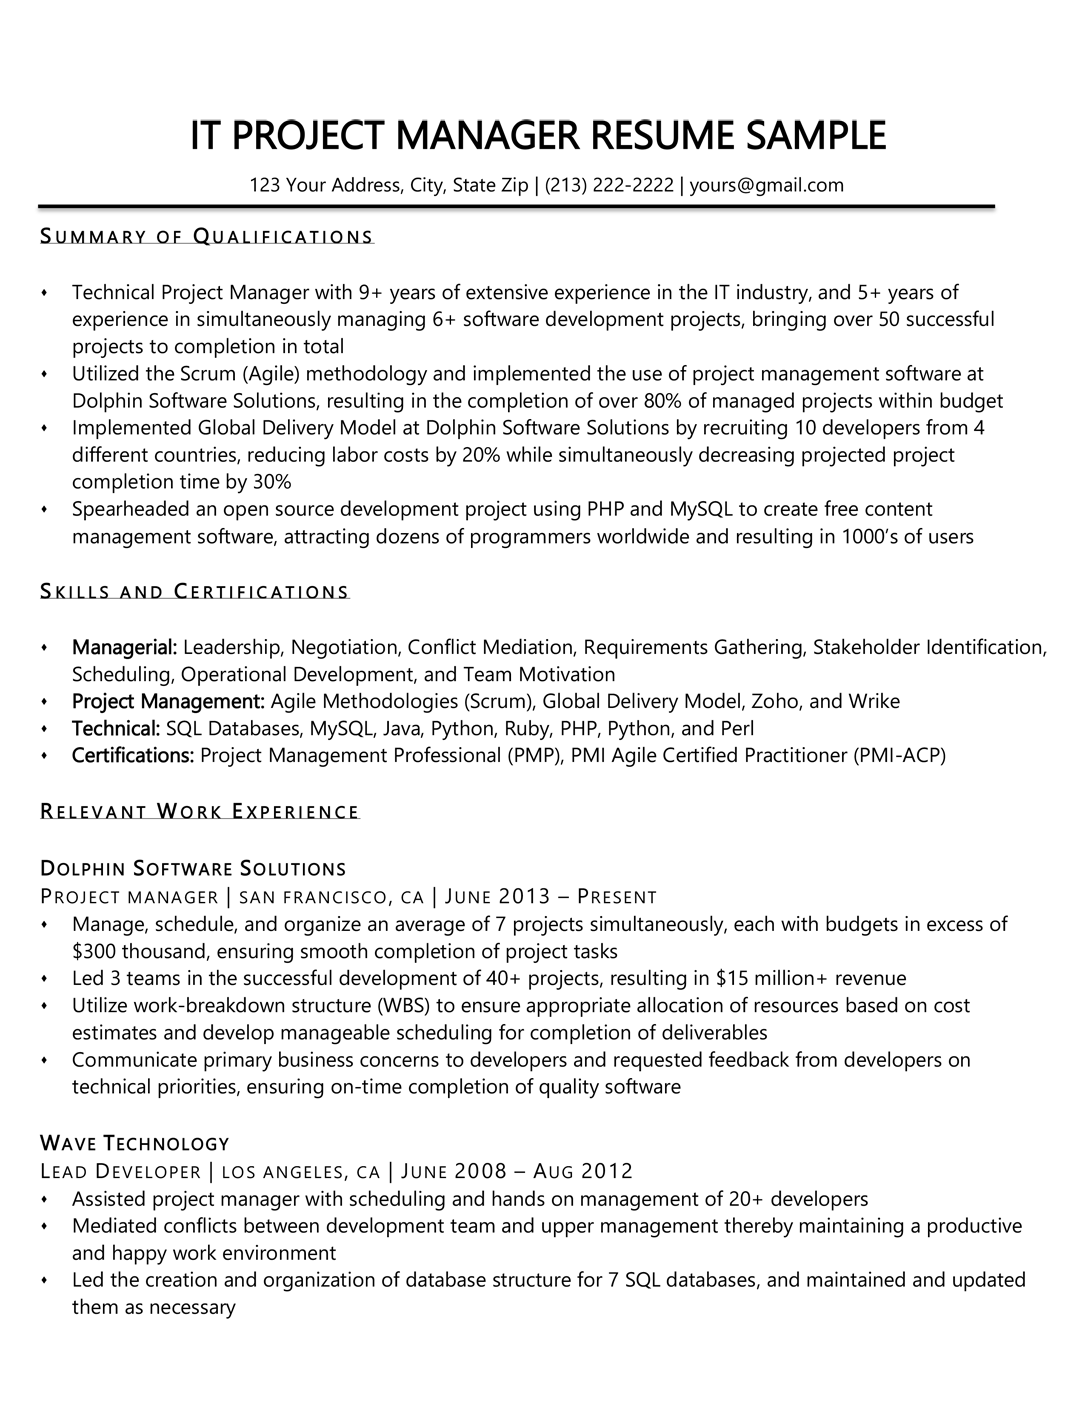 Project Manager Resume Sample Amp Writing Tips